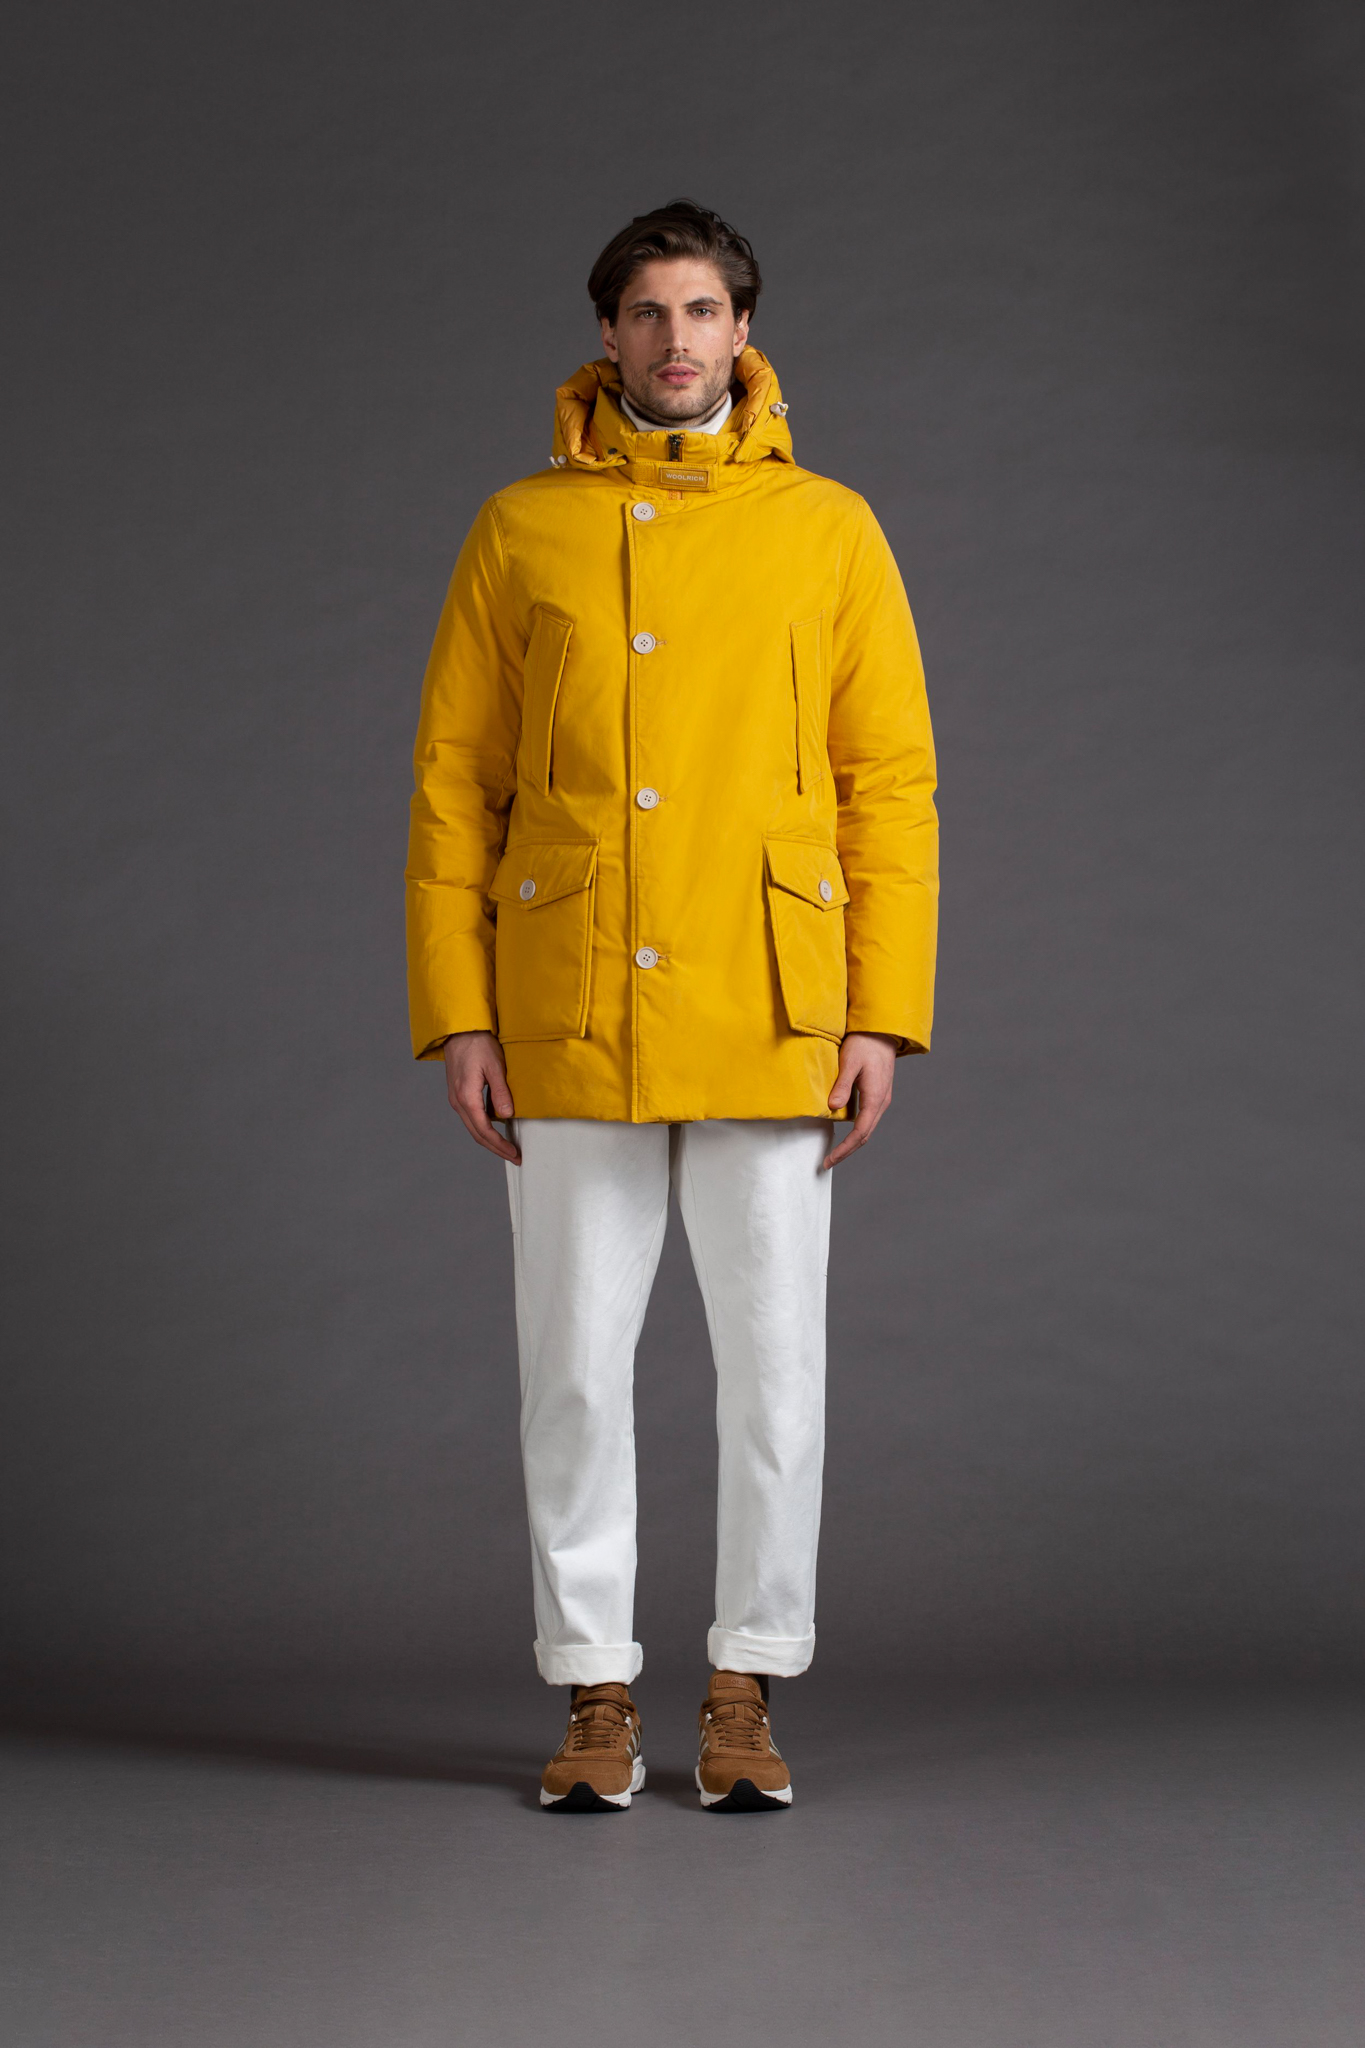 Woolrich Man RTW Fall 2020